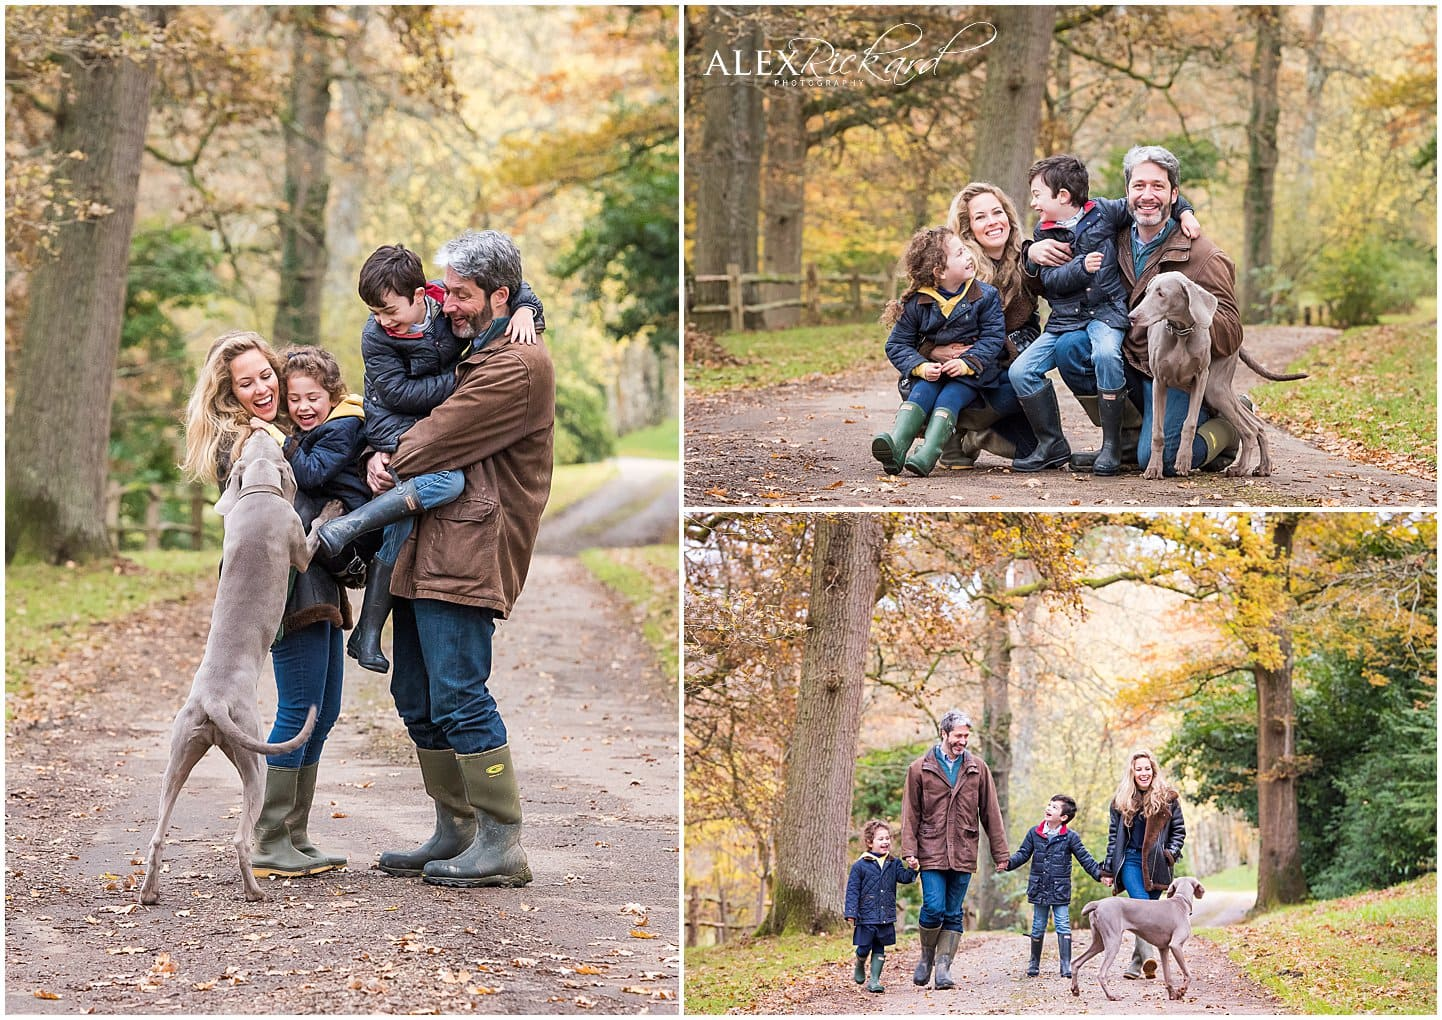 Montage of 3 images of a family outside with their dog during autumn